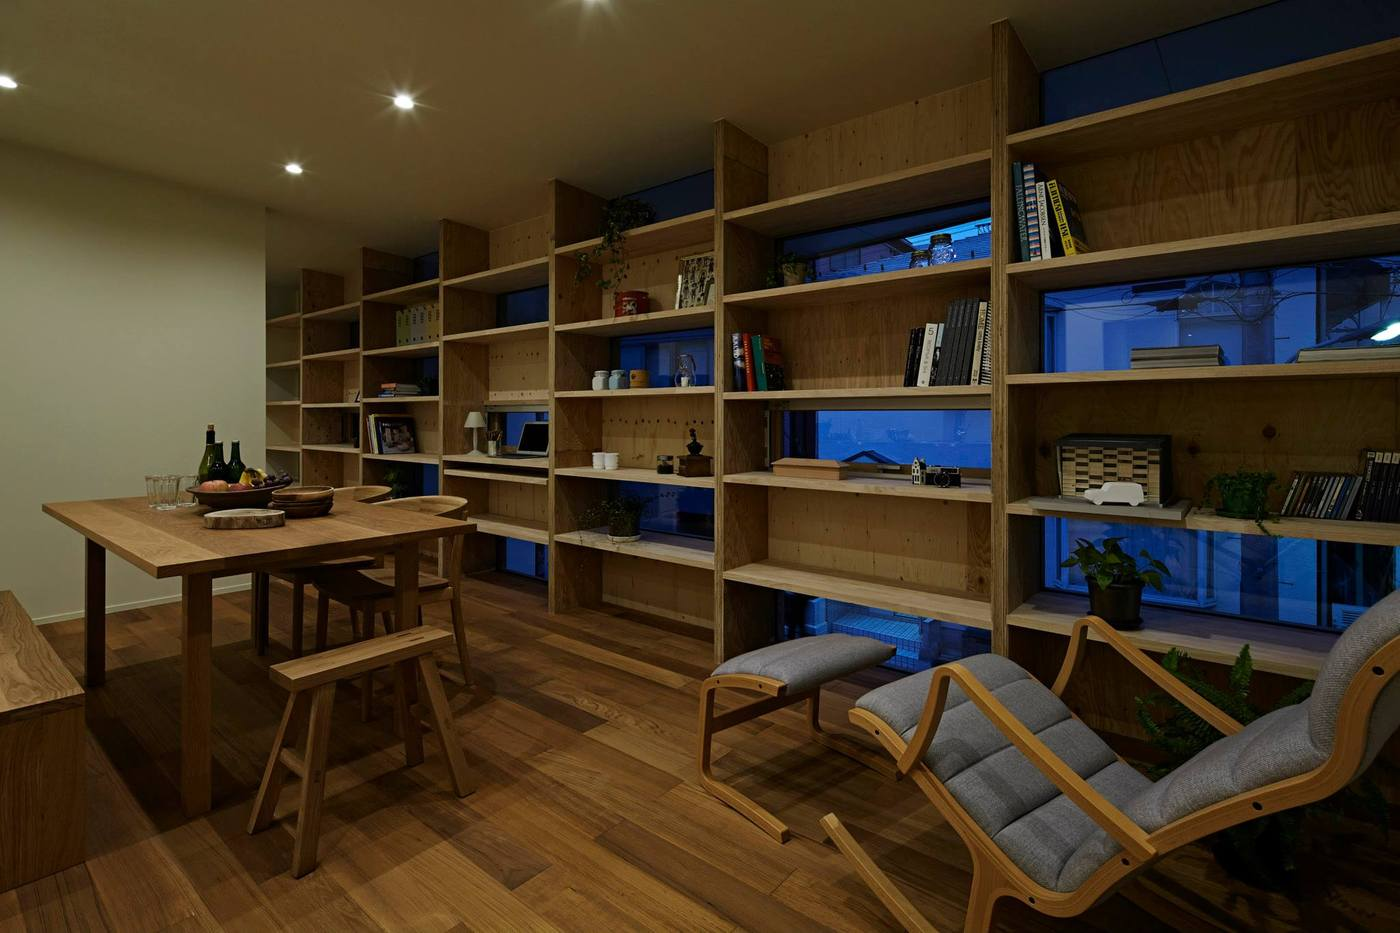 window-shelving-idea-save-space-and-get-privacy-3-thumb-1400xauto-53684